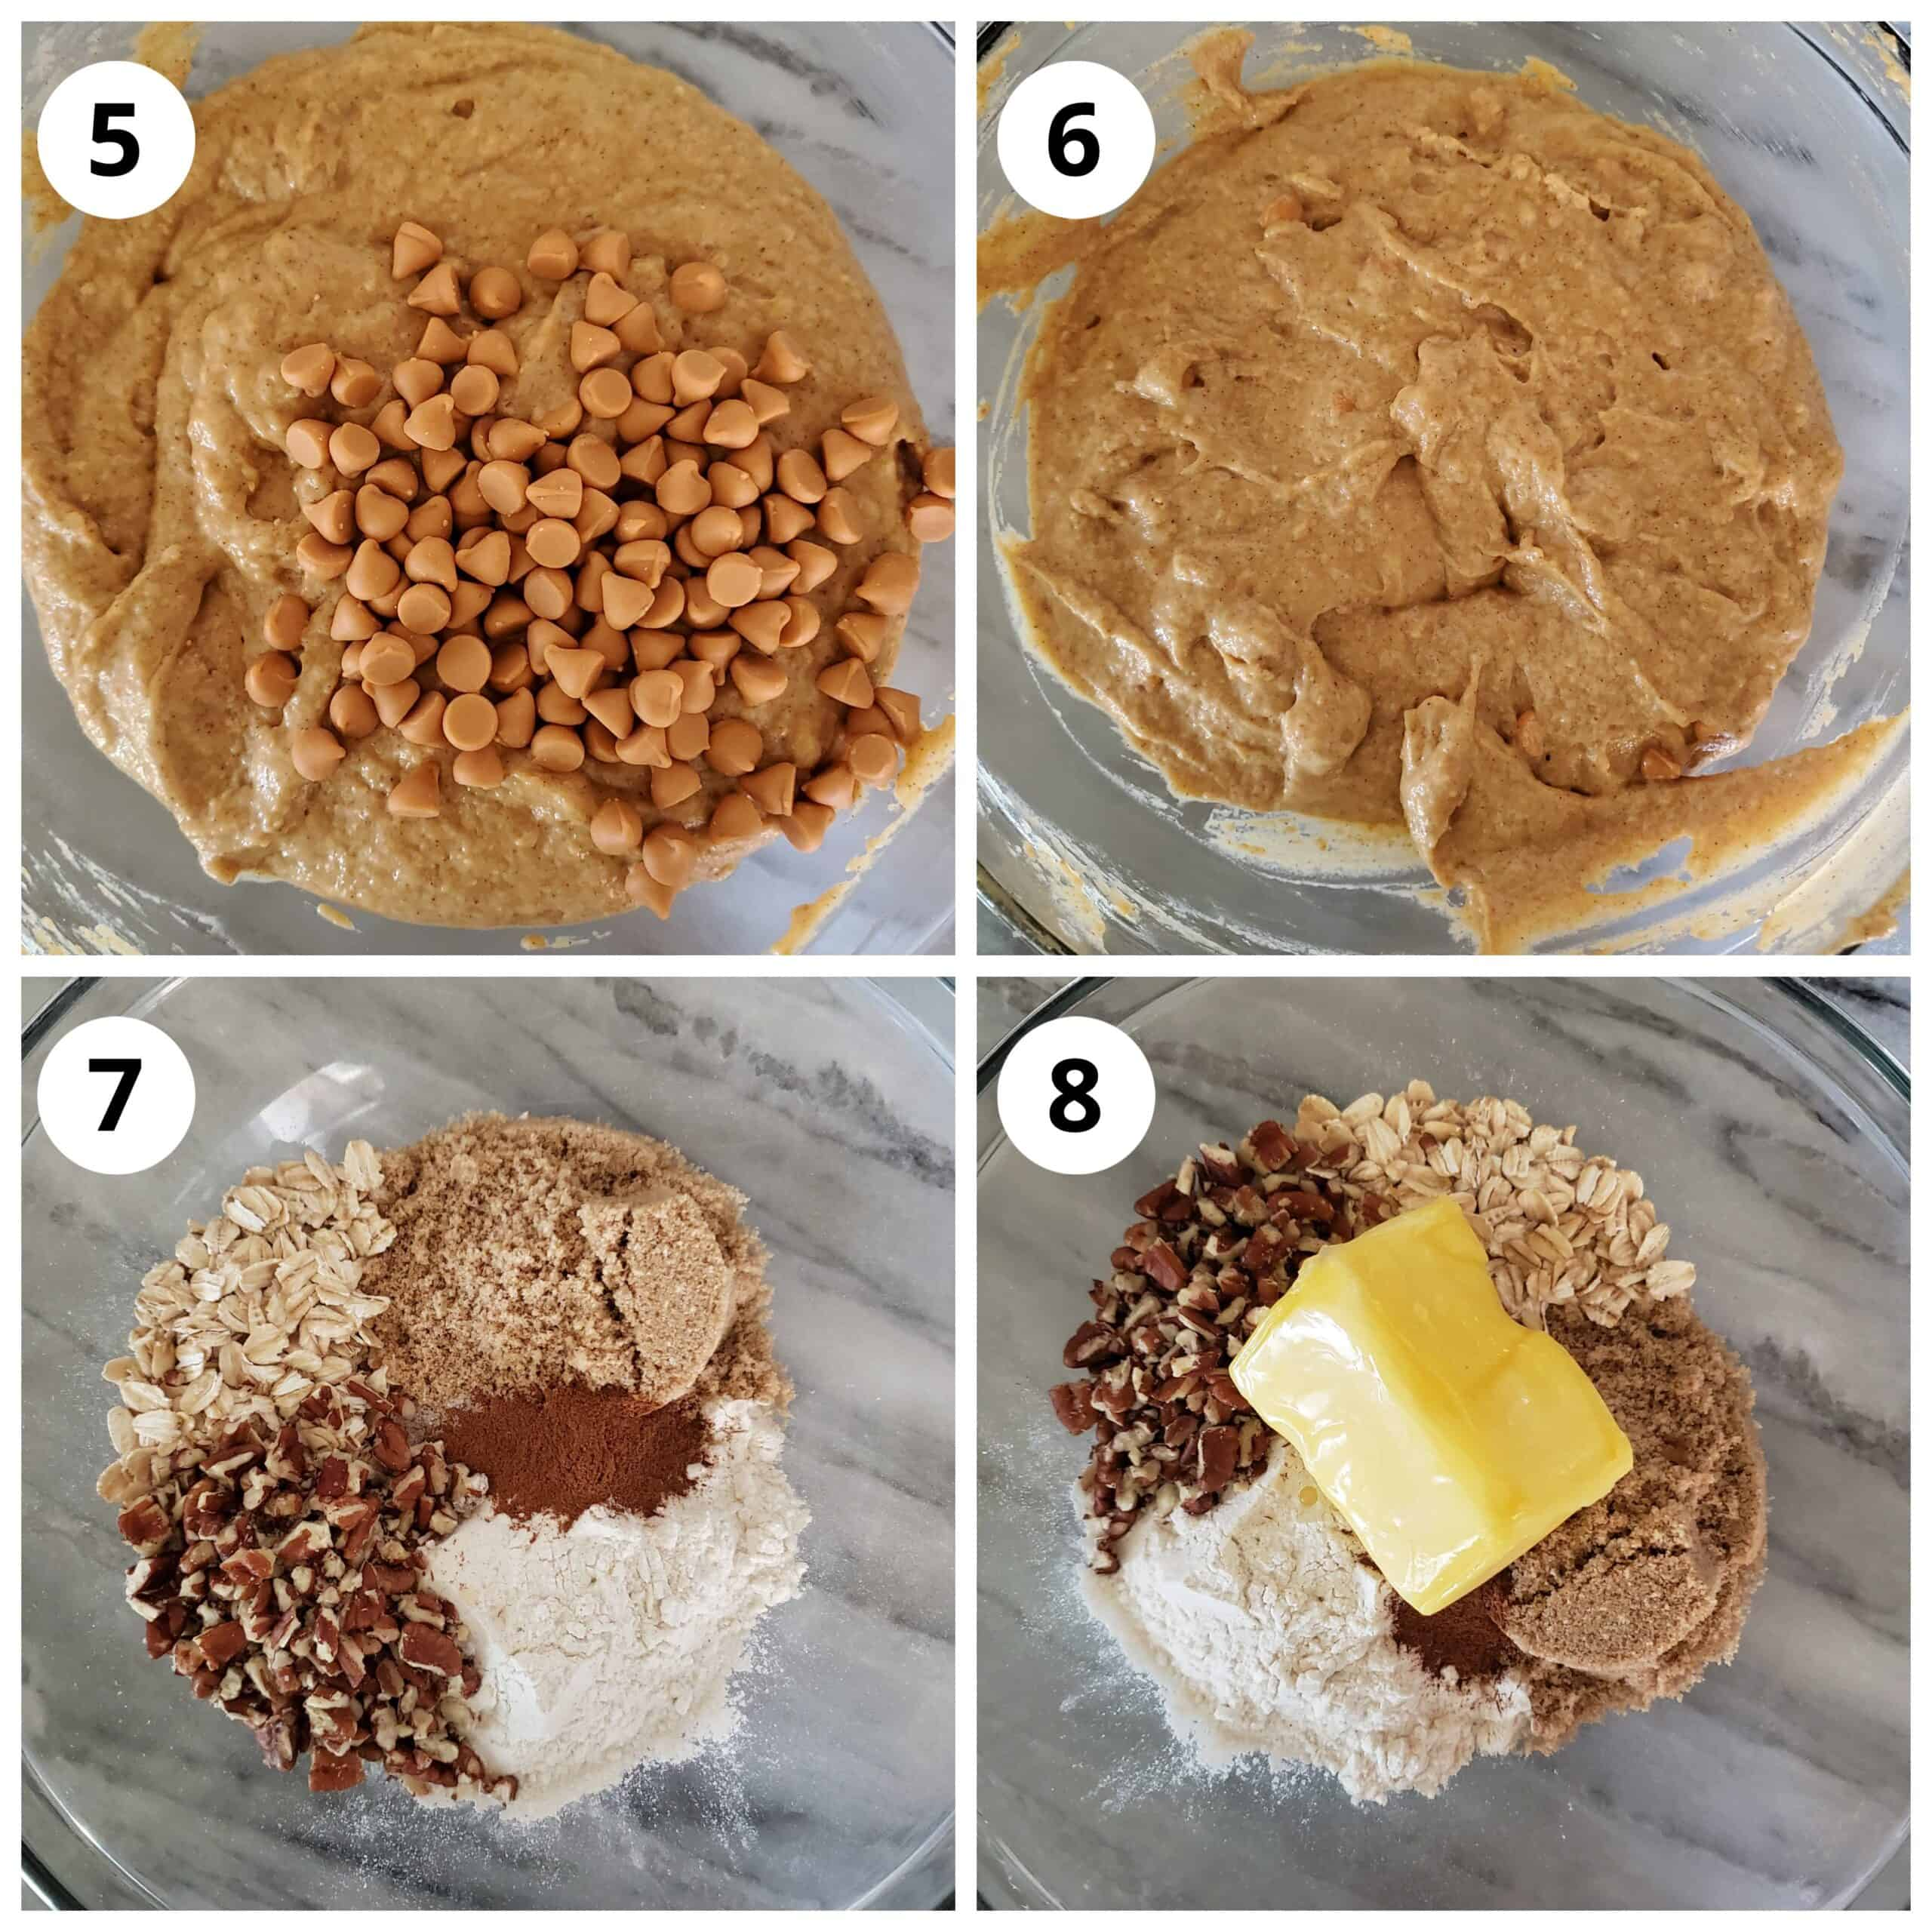 Steps for making streusel